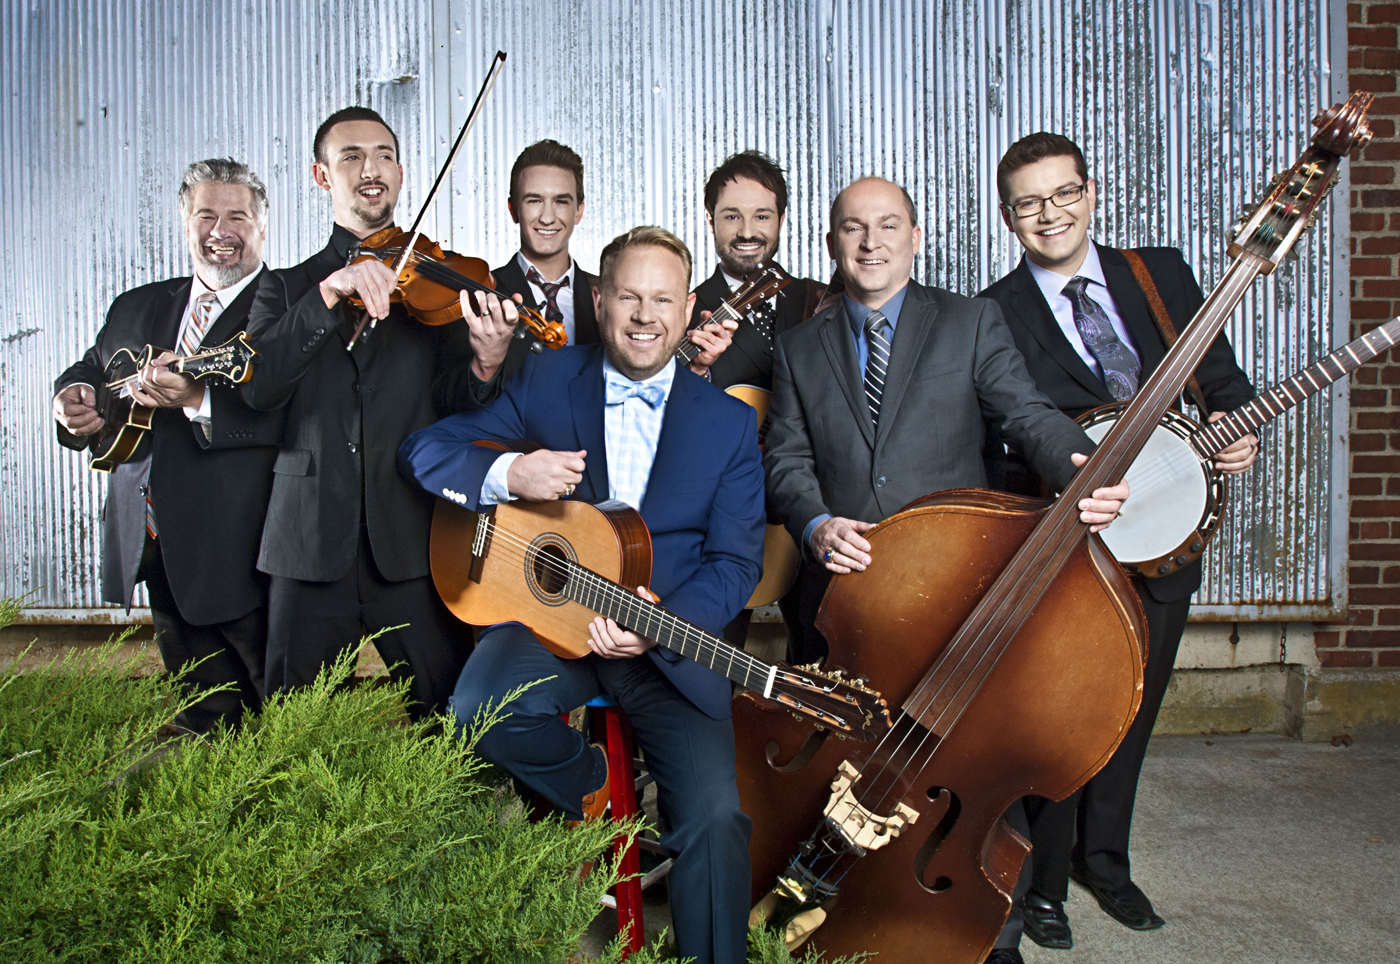 BY POPULAR DEMAND! Award-winning group returns to the Cactus at 2:30 pm, Aug 11